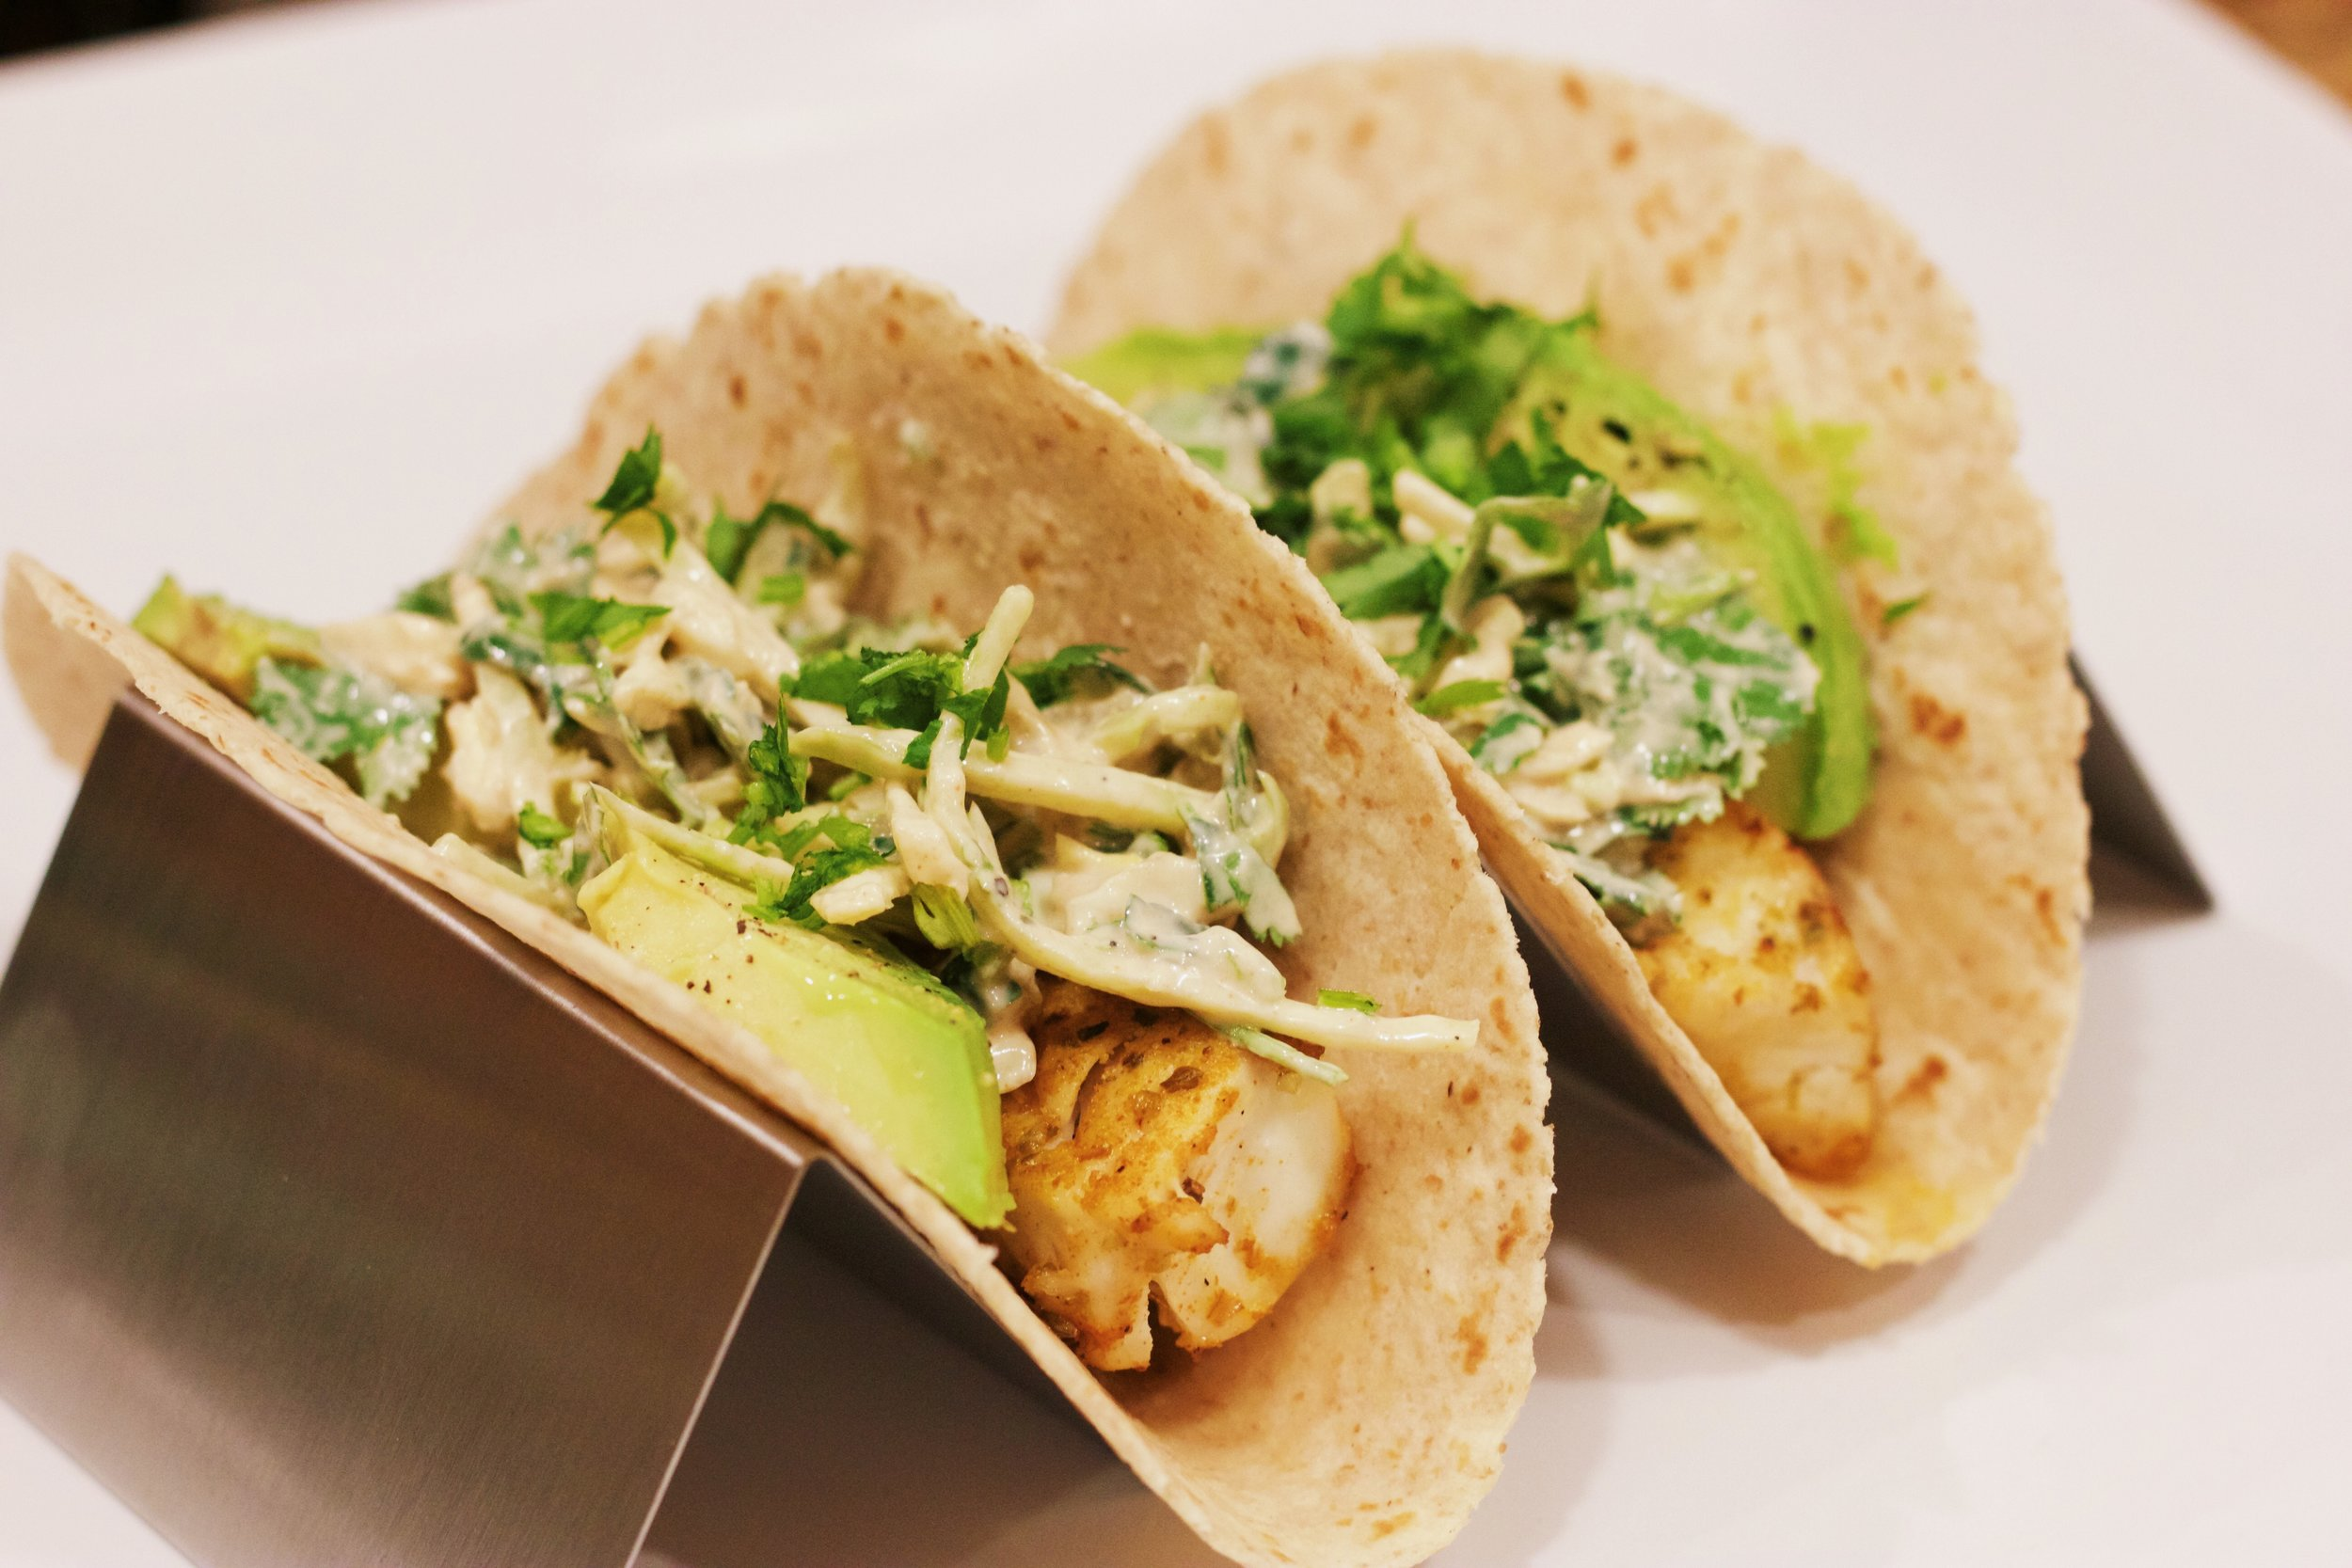 Quick and Healthy Tilapia Fish Tacos - These delicious fish tacos are ready in under 30 minutes and have less than 300 calories! They are a perfect weeknight meal! www.cardiocoffeeandkale.com